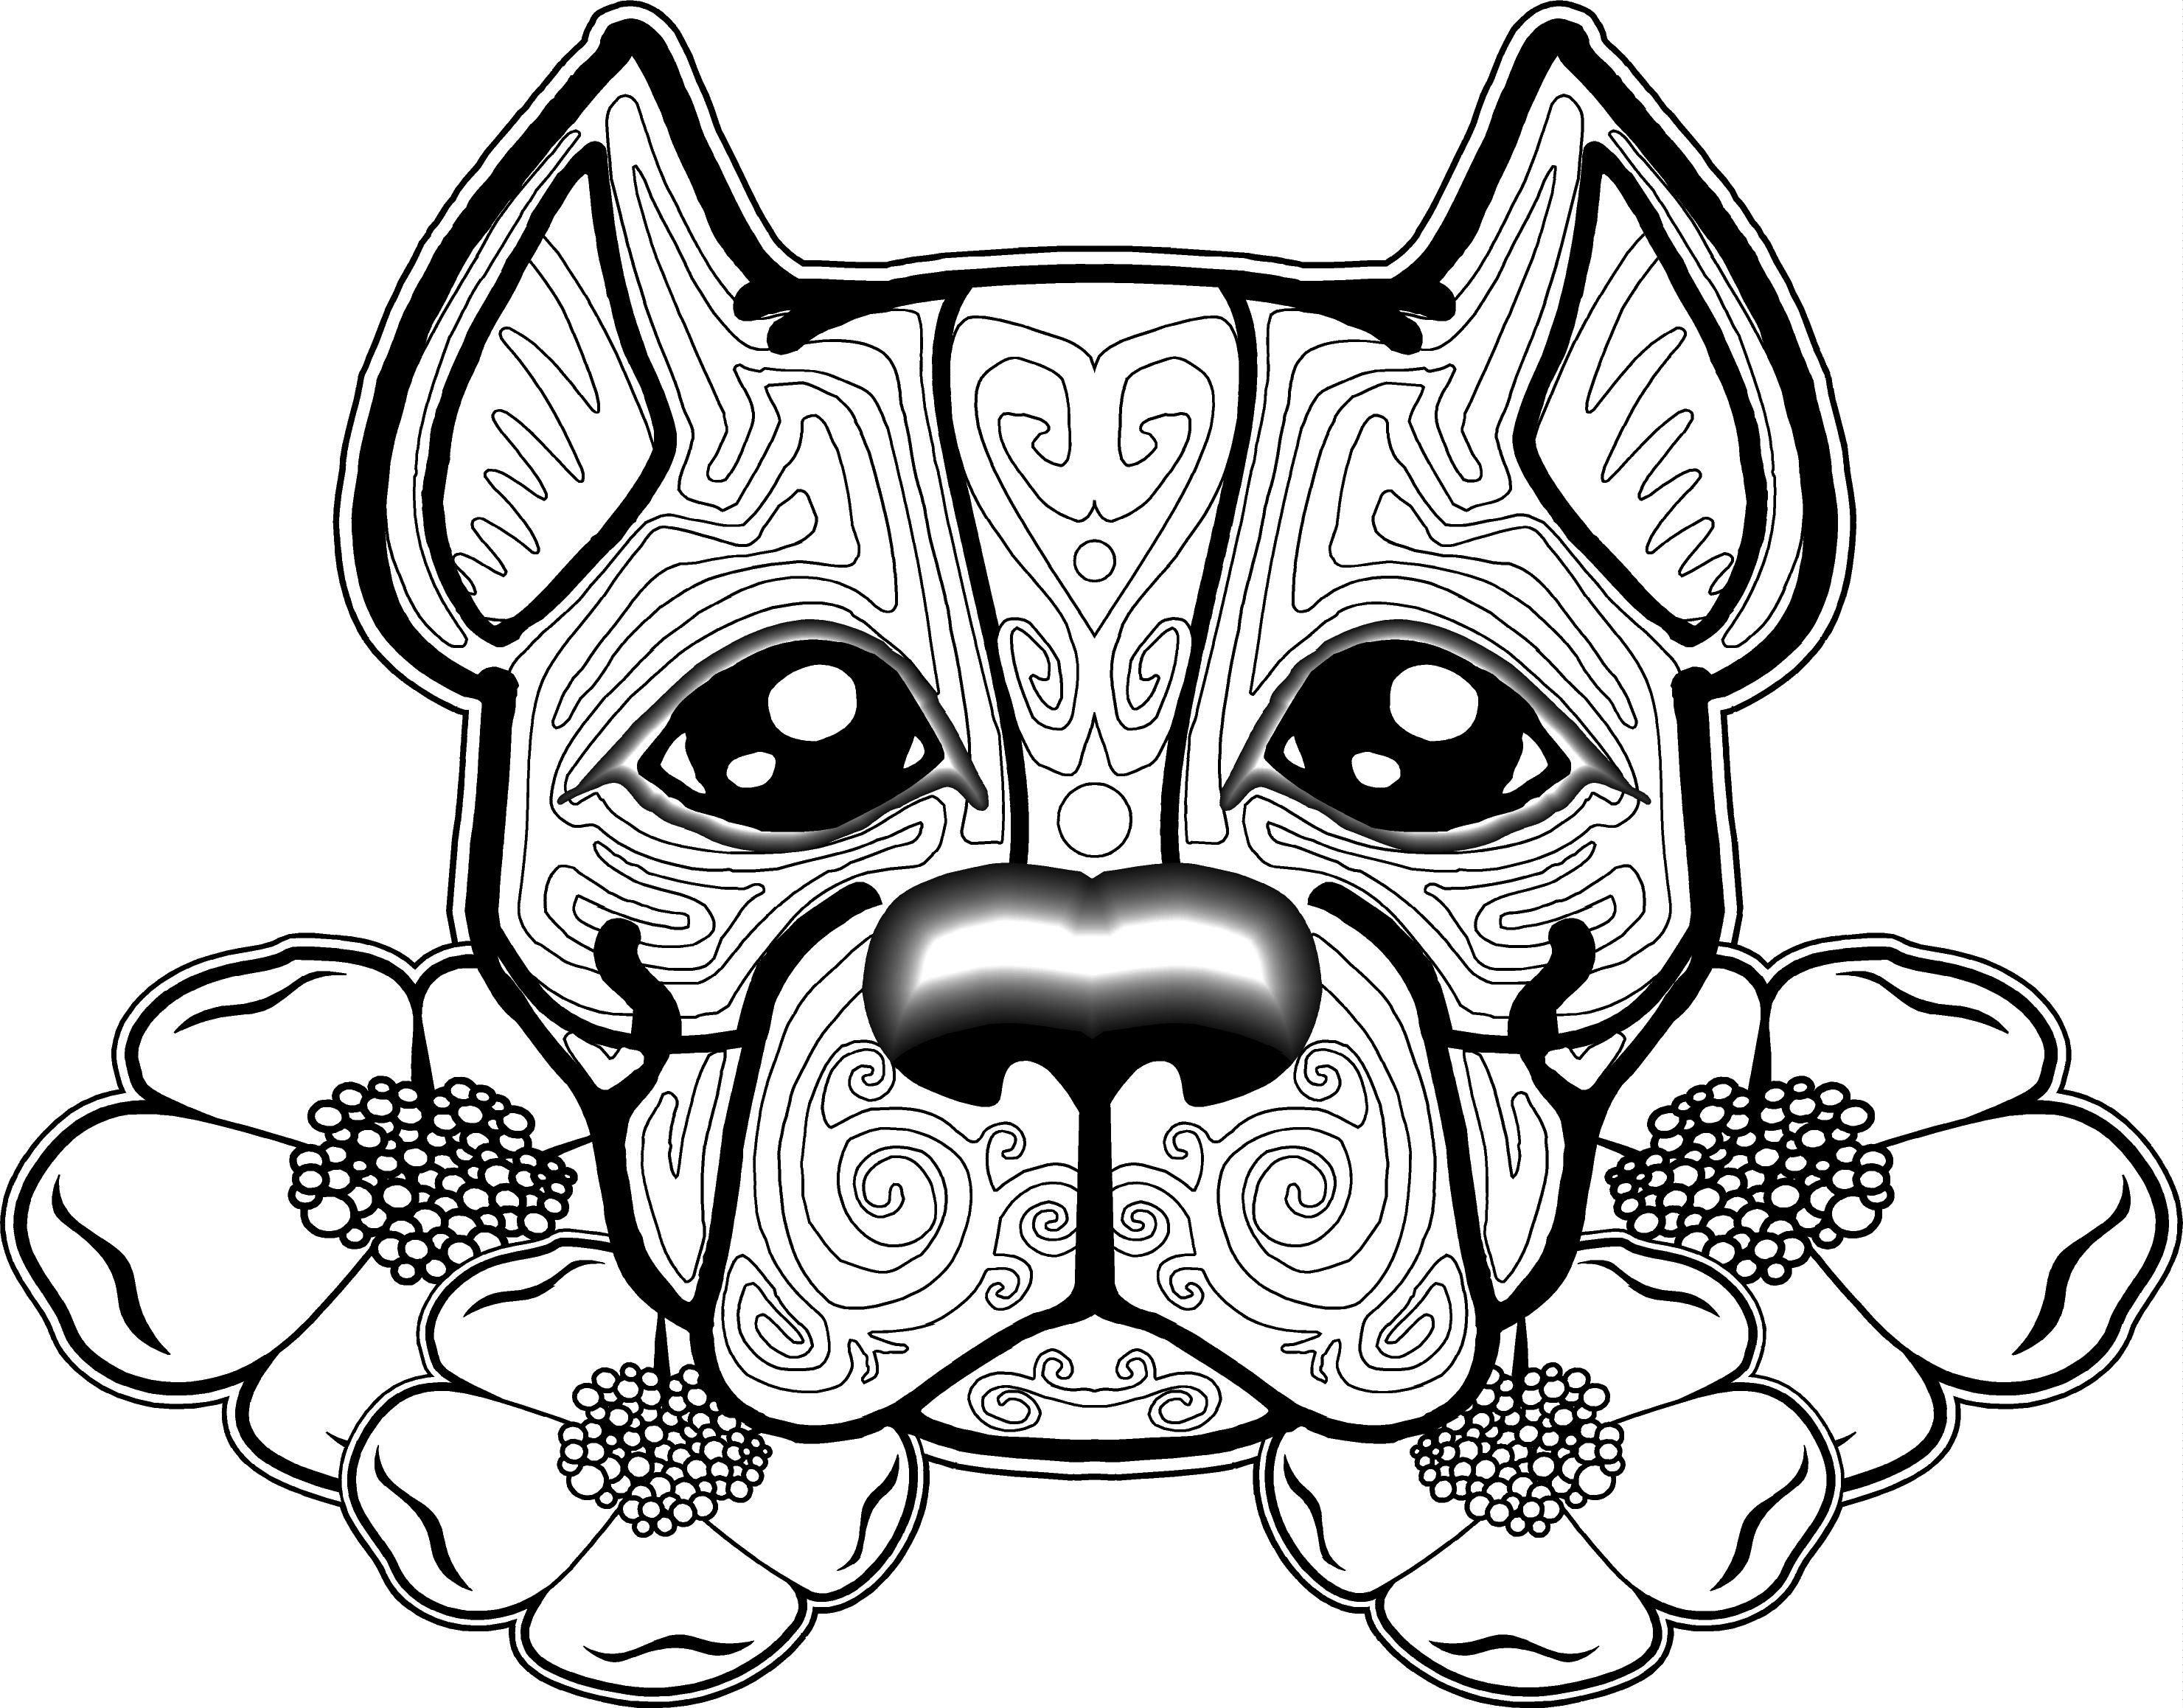 Free Dog Coloring Pages For Adults   Free Printable Coloring Pages - Free Printable Dog Coloring Pages